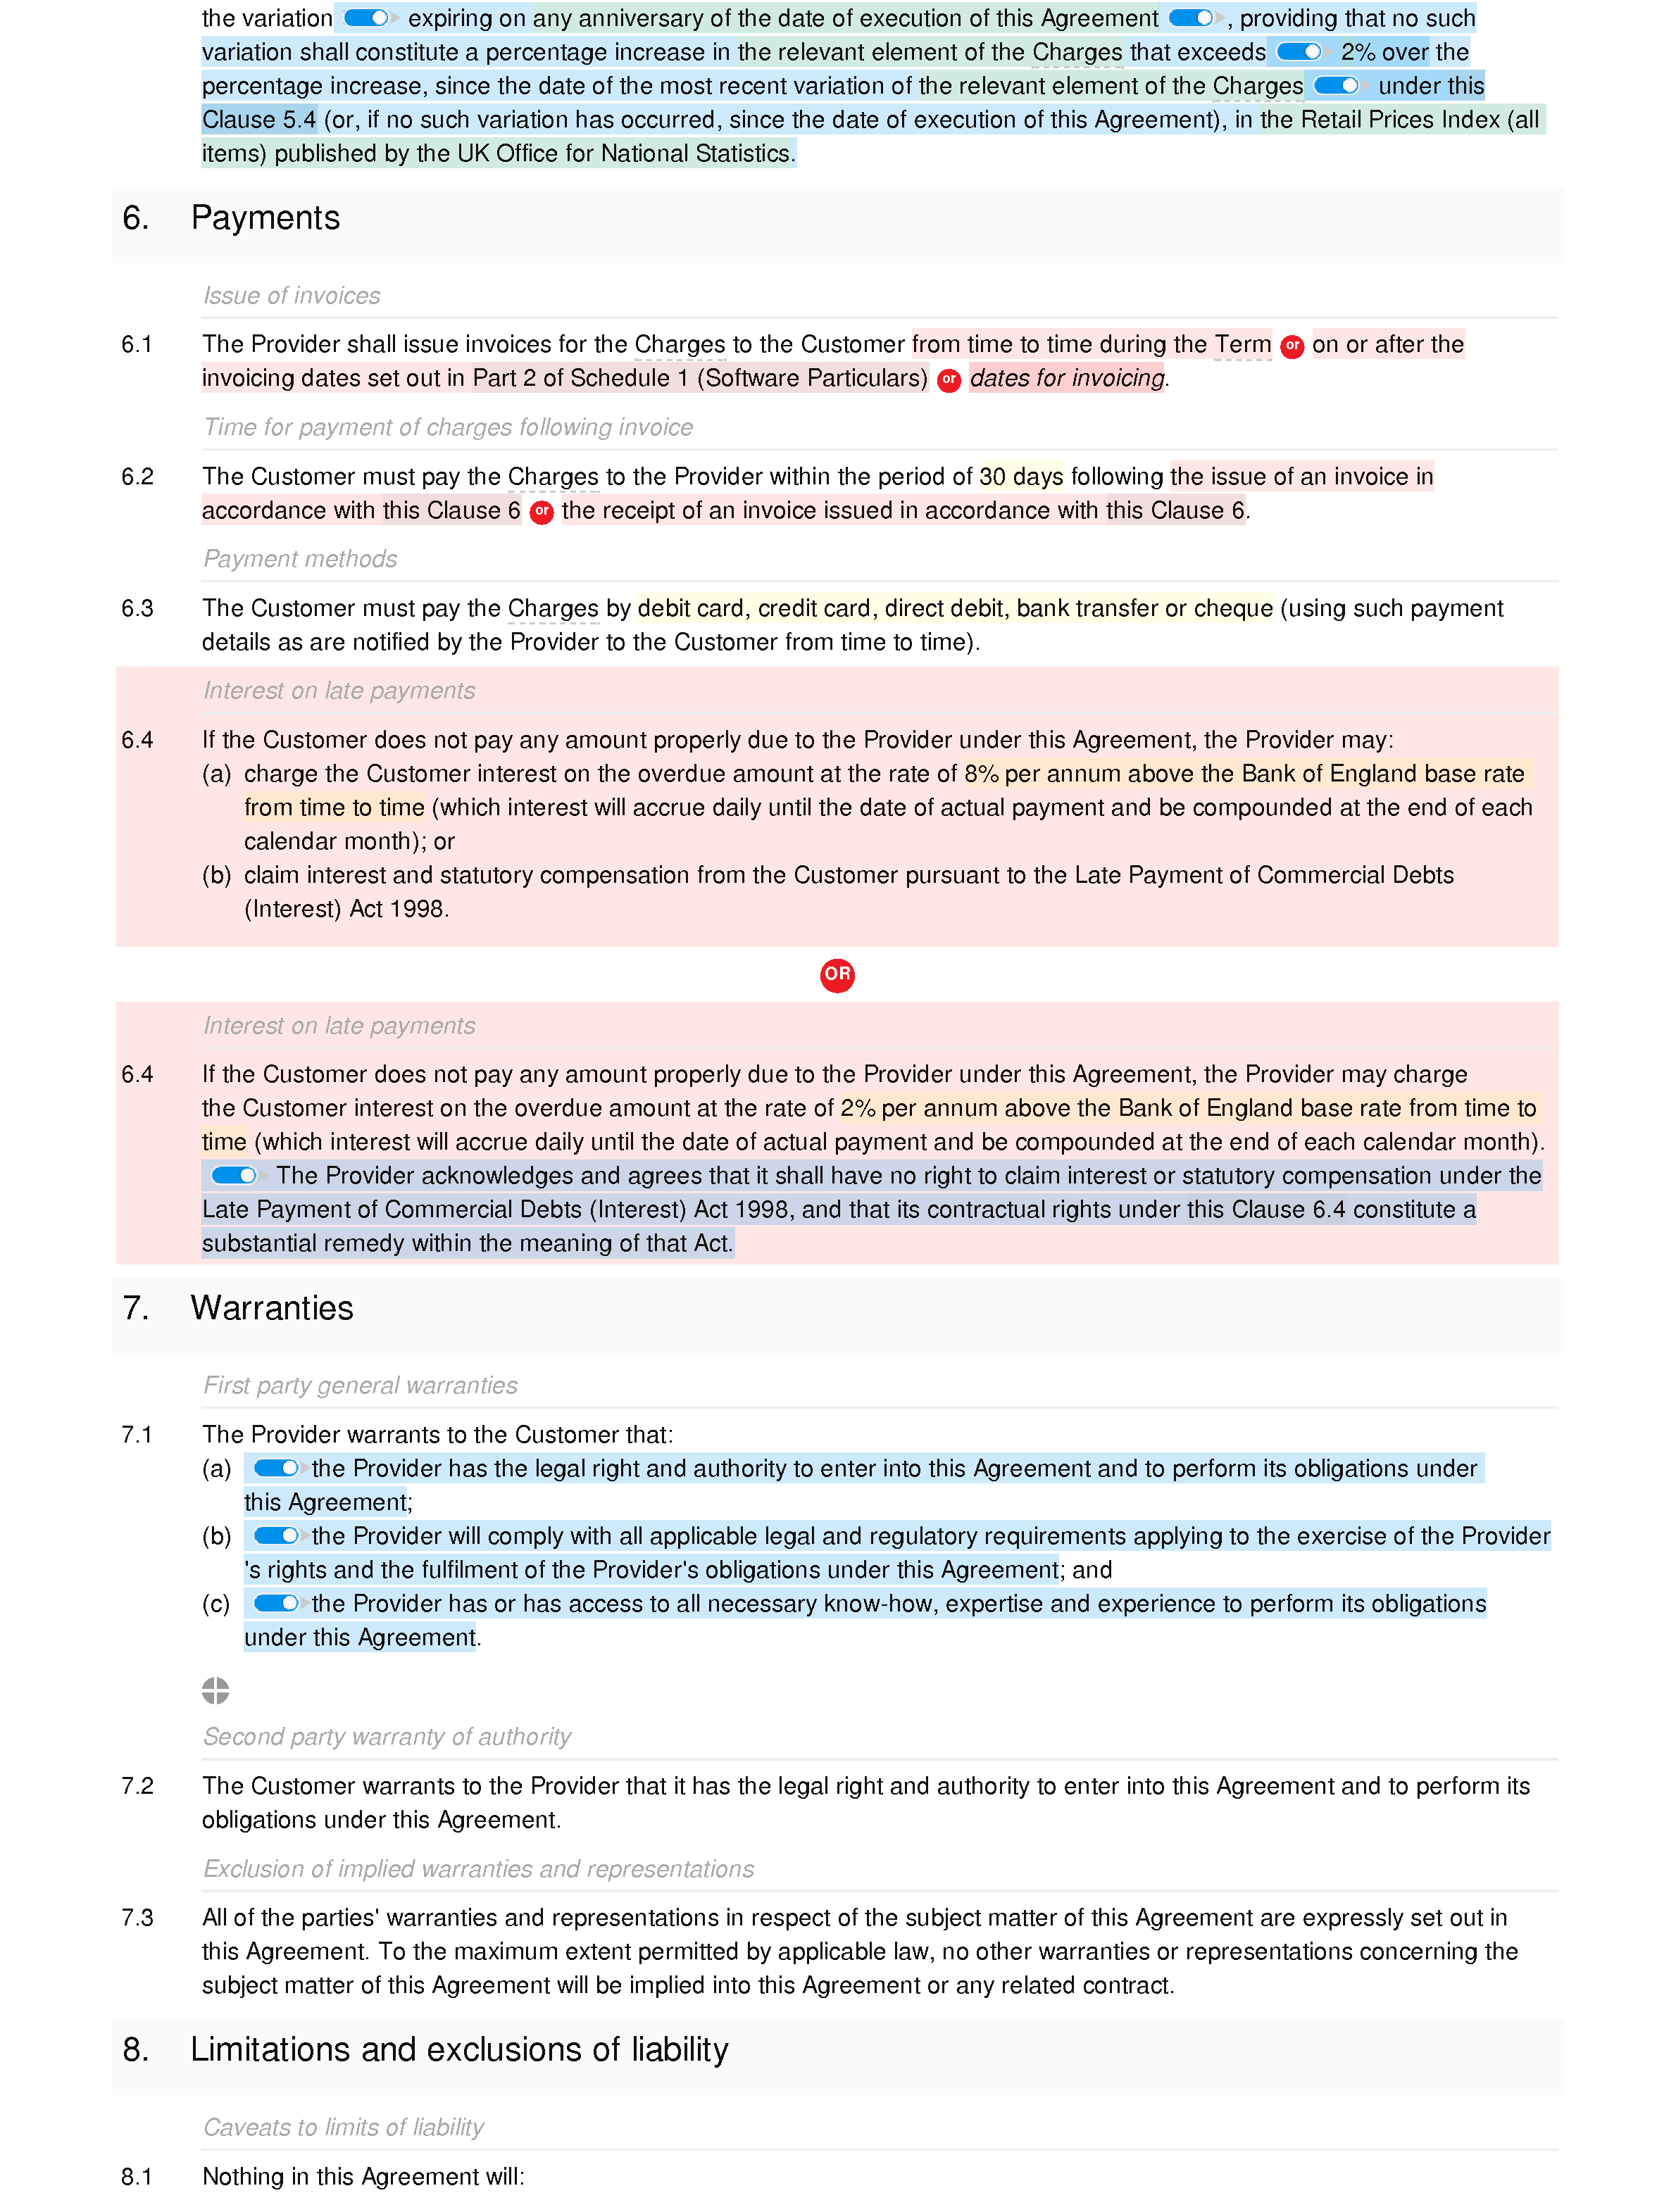 Software maintenance agreement (basic) document editor preview